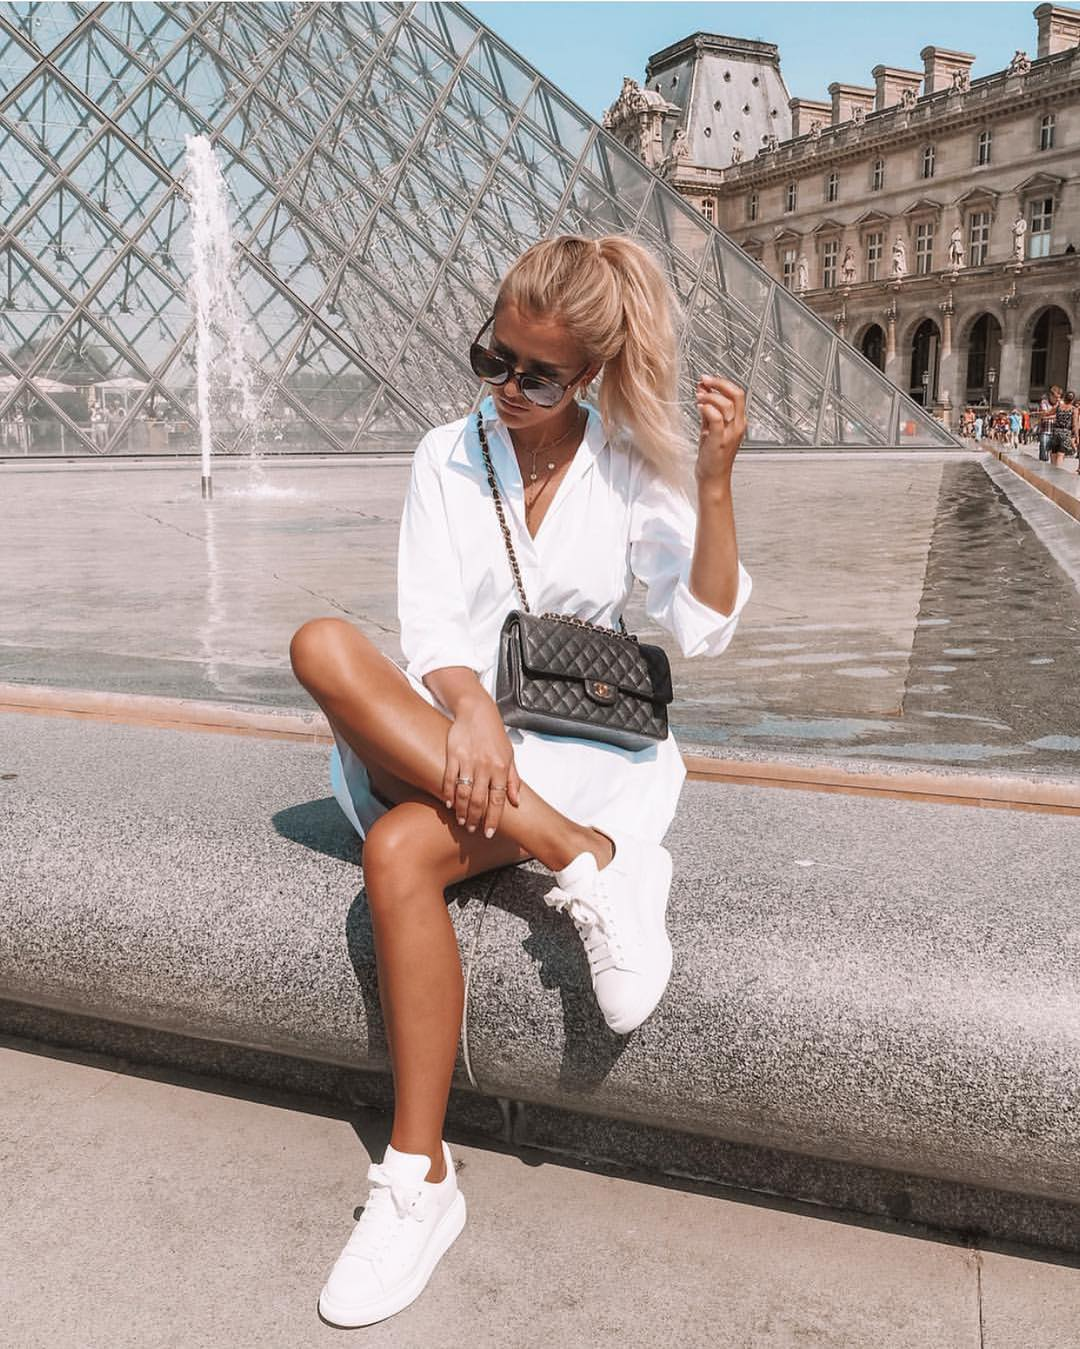 All White Summer Look For Paris 2020